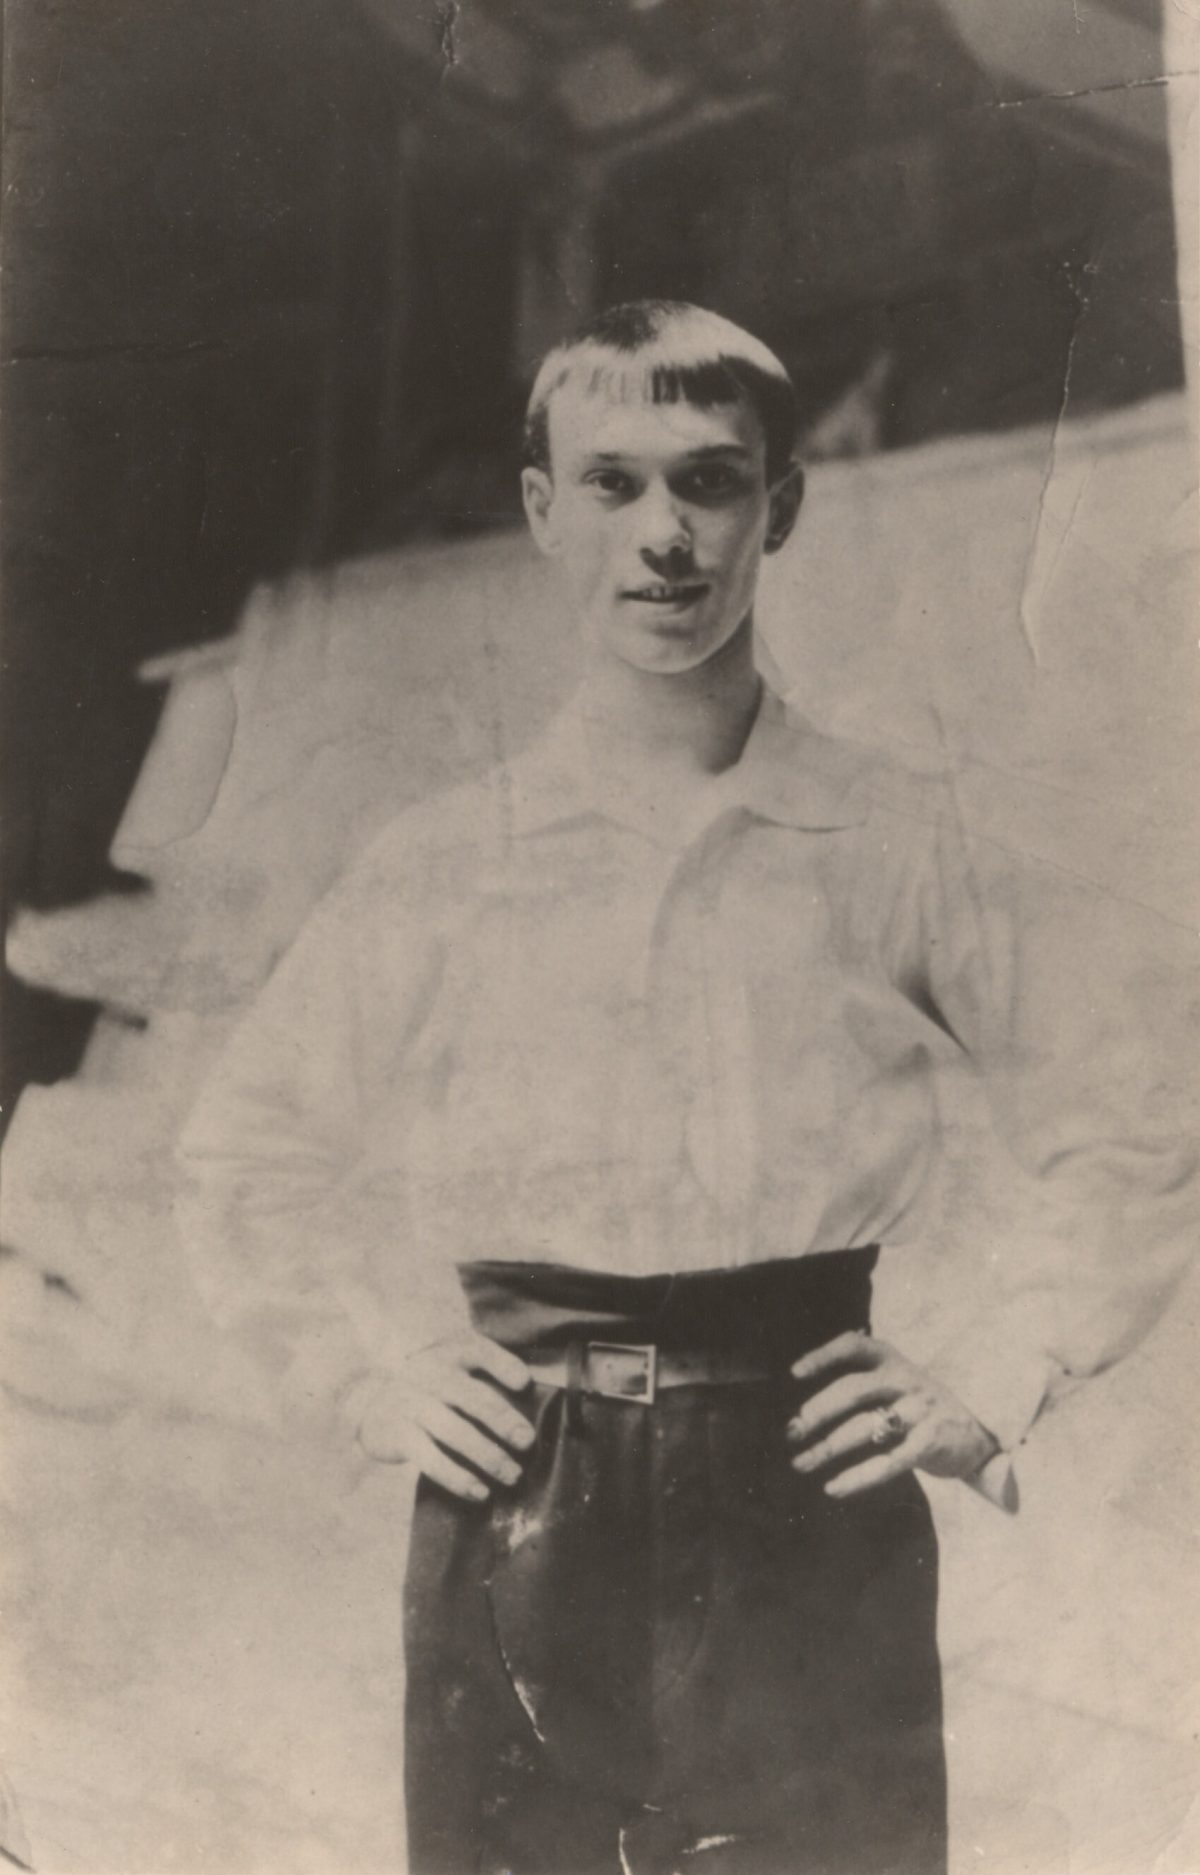 Nijinsky in practice clothes, 1908